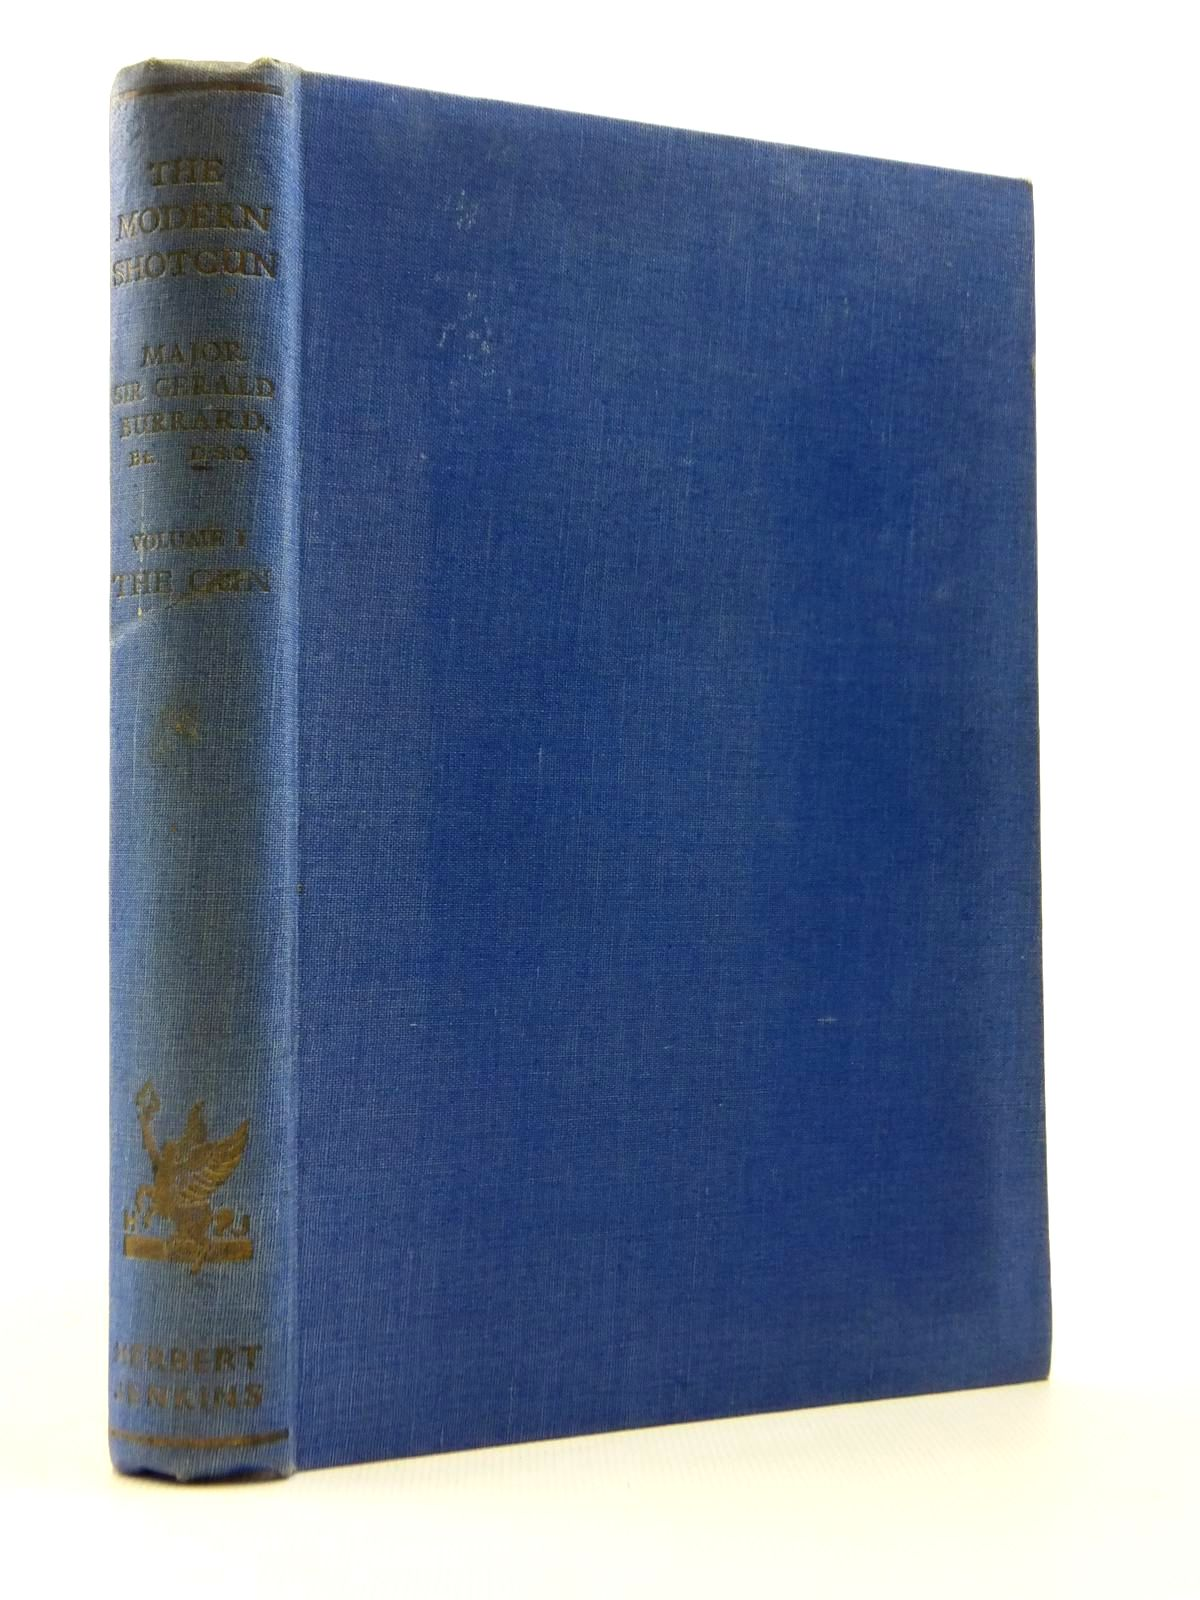 Photo of THE MODERN SHOTGUN VOLUME I THE GUN written by Burrard, Gerald published by Herbert Jenkins (STOCK CODE: 2120825)  for sale by Stella & Rose's Books